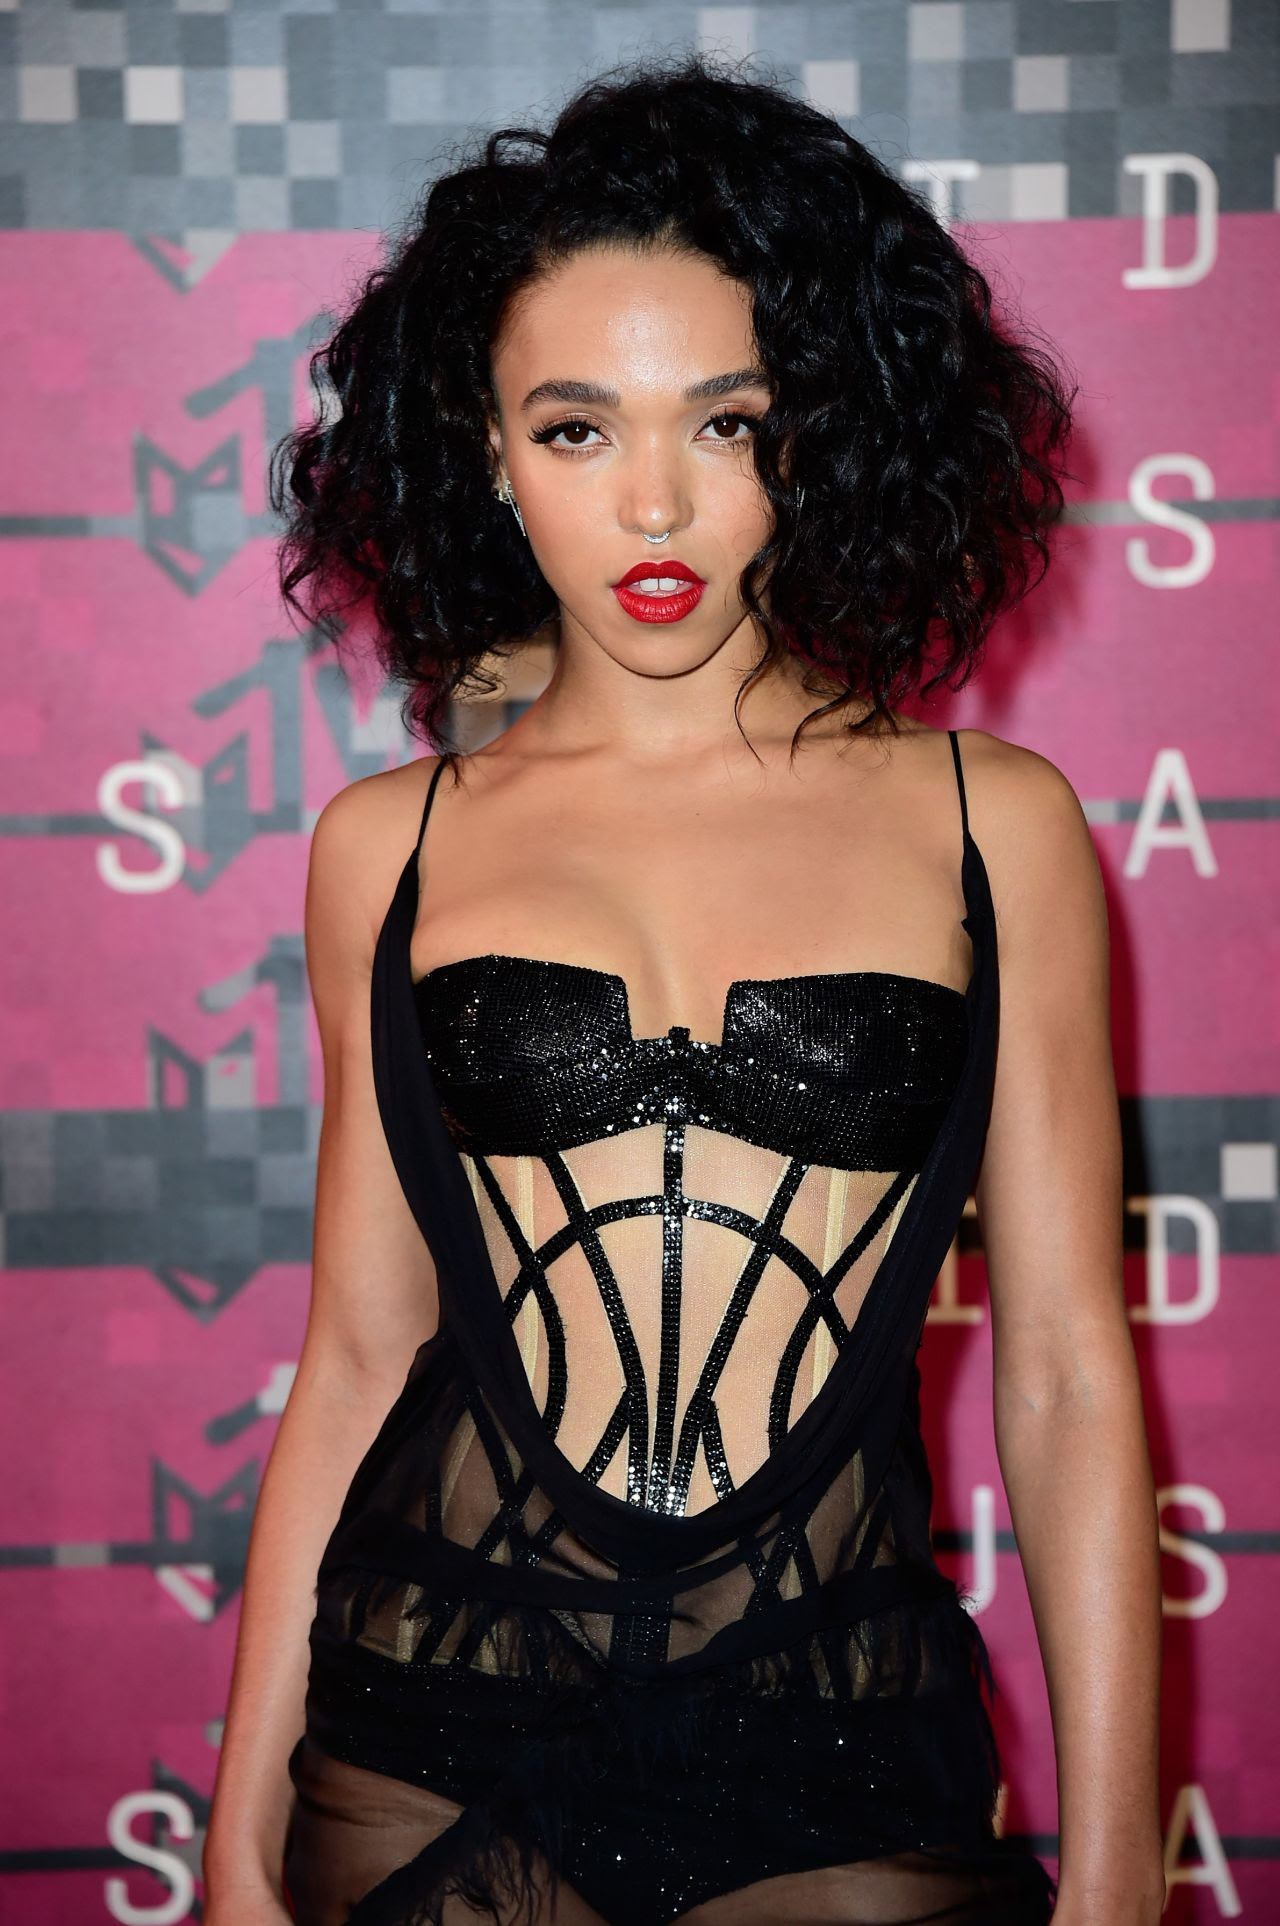 http://celebmafia.com/wp-content/uploads/2015/08/fka-twigs-2015-mtv-video-music-awards-at-microsoft-theater-in-los-angeles_11.jpg